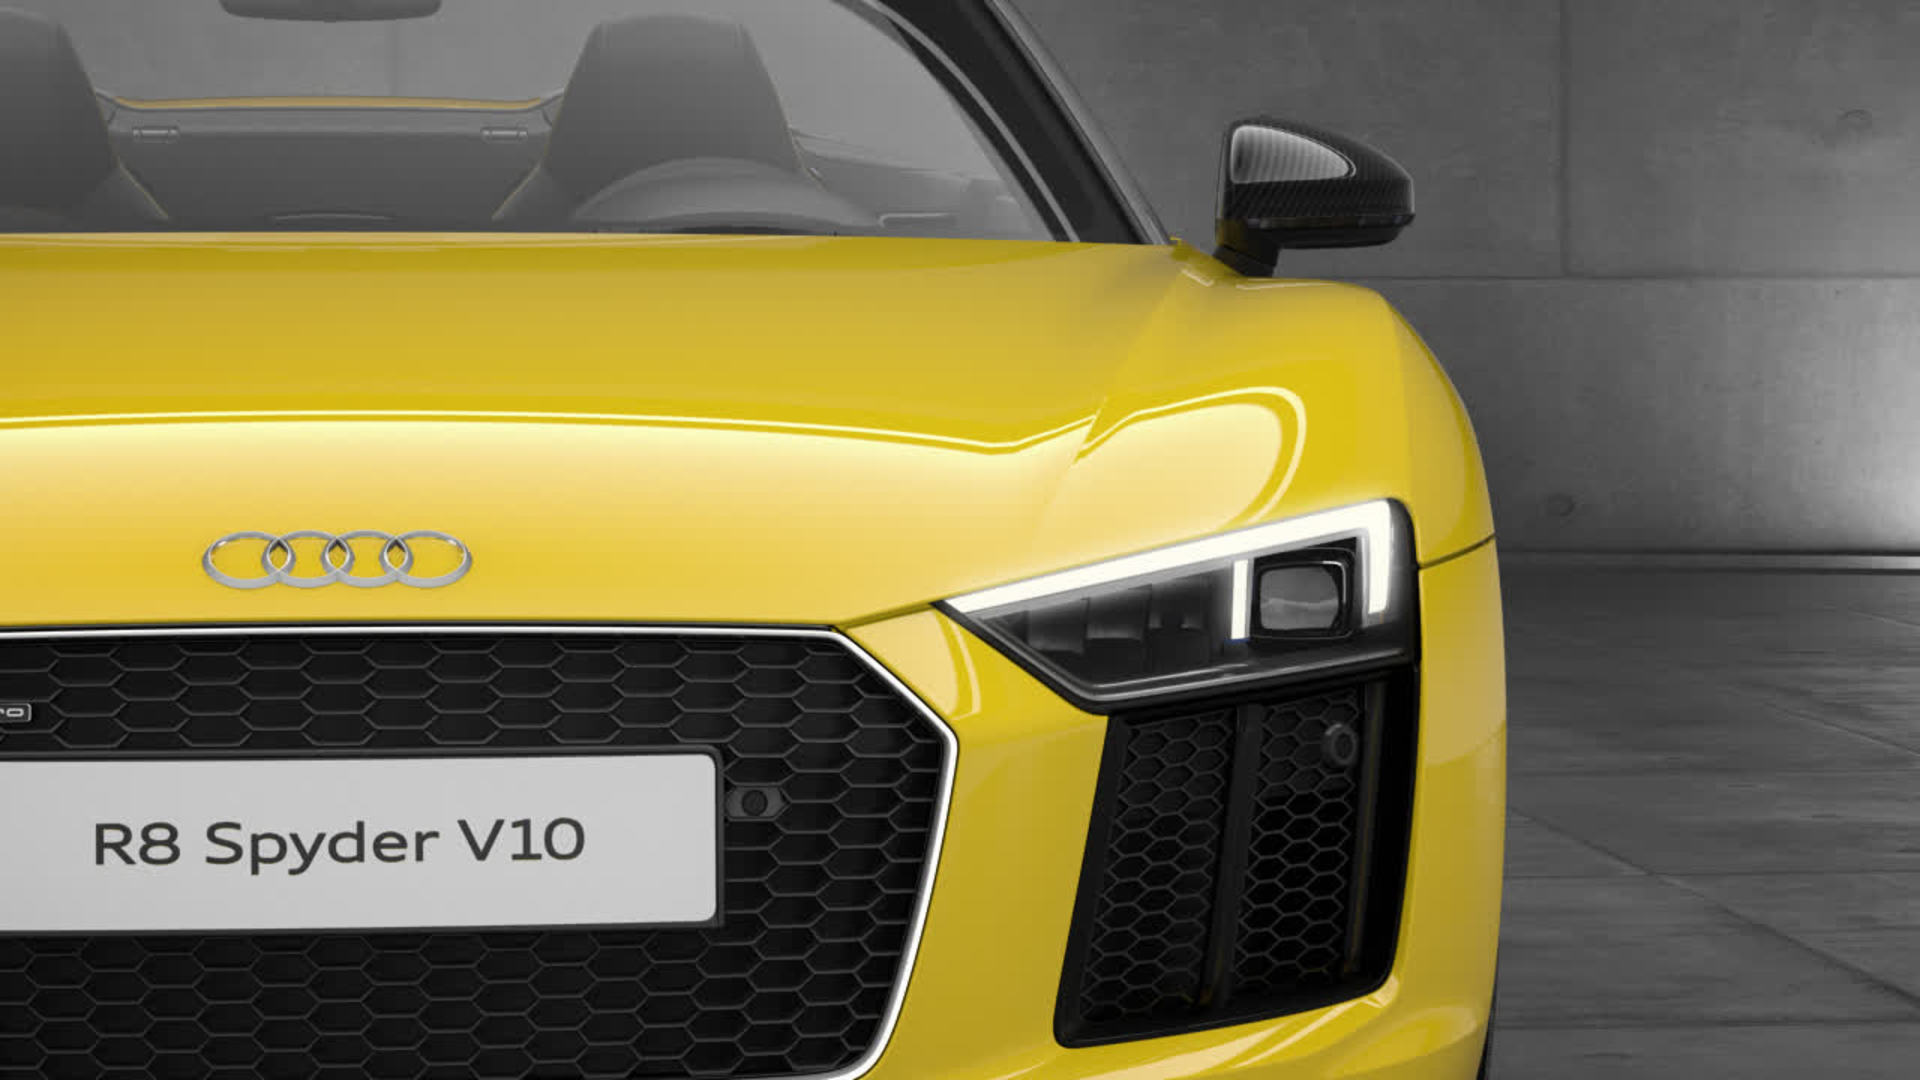 Audi R8 Spyder V10 LED Scheinwerfer Animation